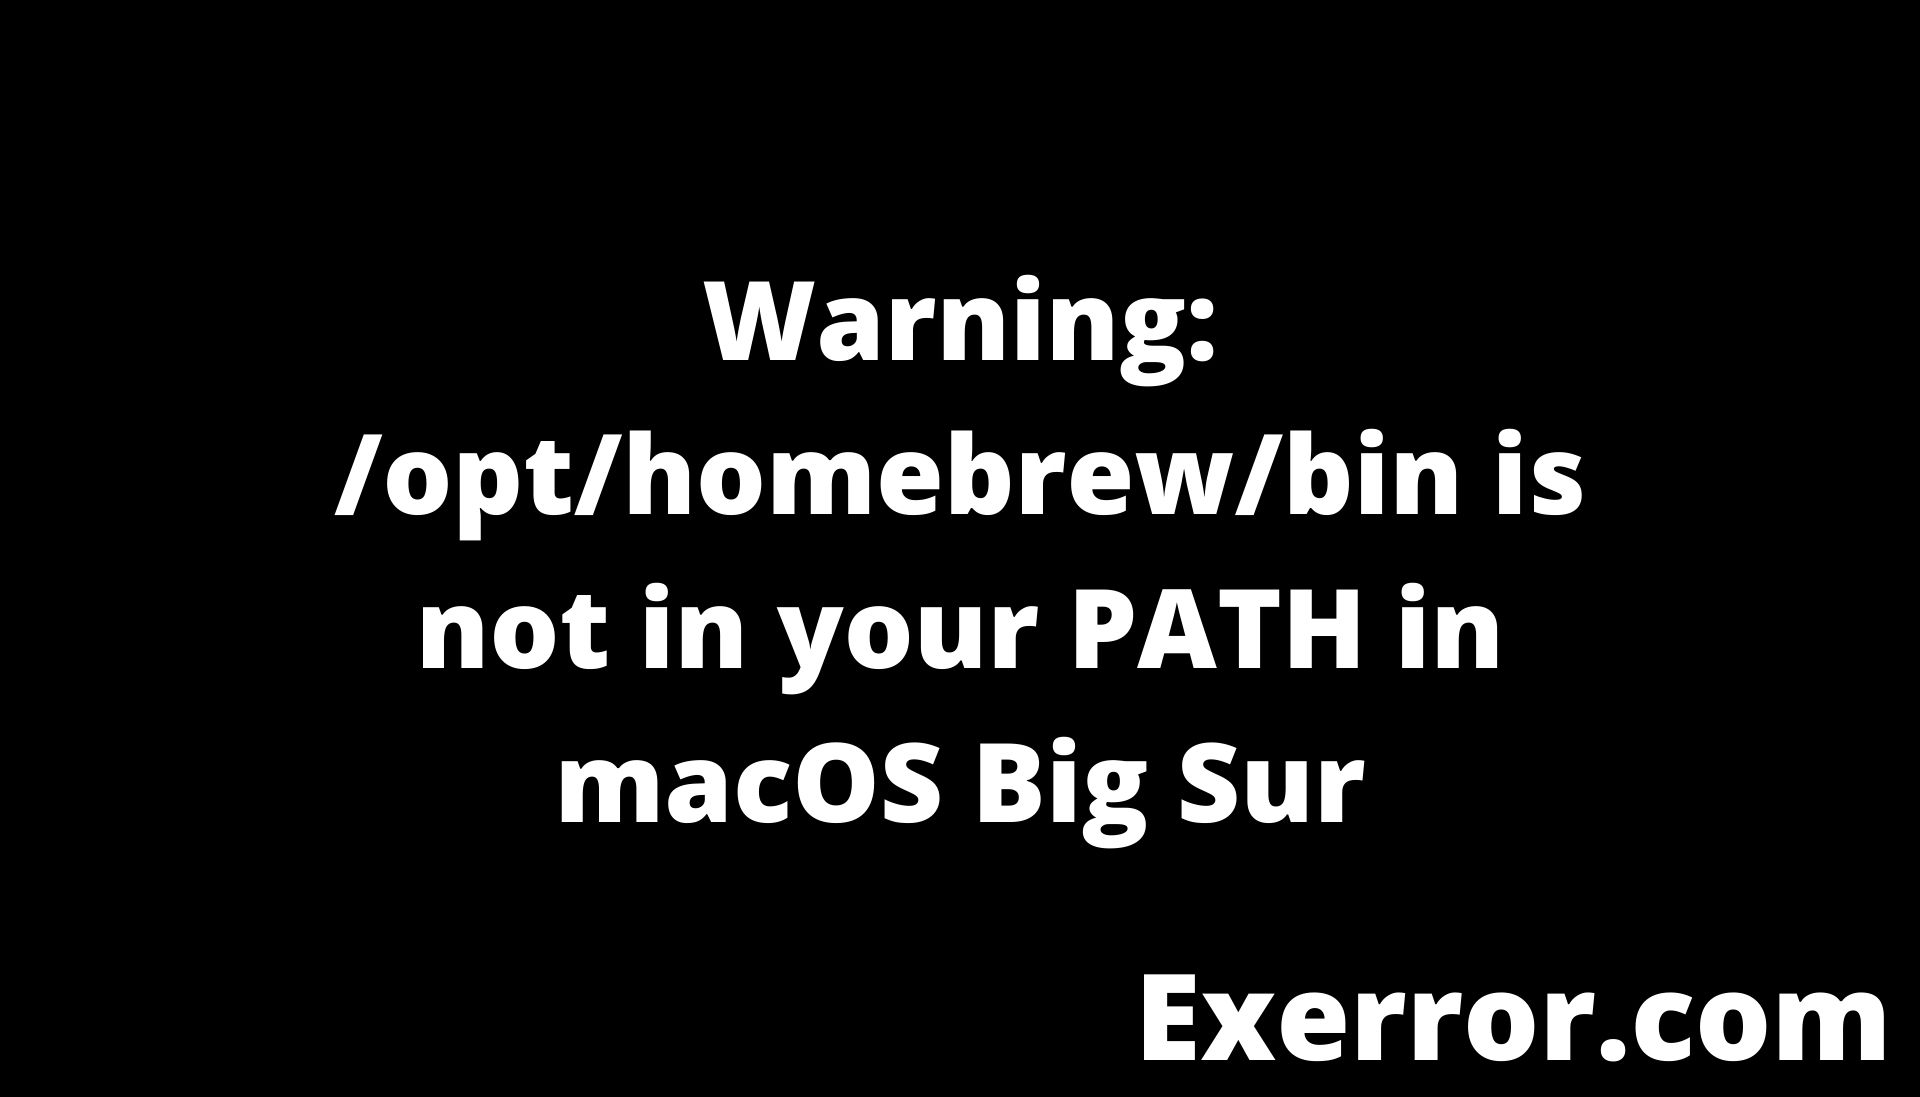 Warning opthomebrewbin is not in your PATH in macOS Big Sur, Getting a warning when installing homebrew on macOS Big Sur (M1 chip)